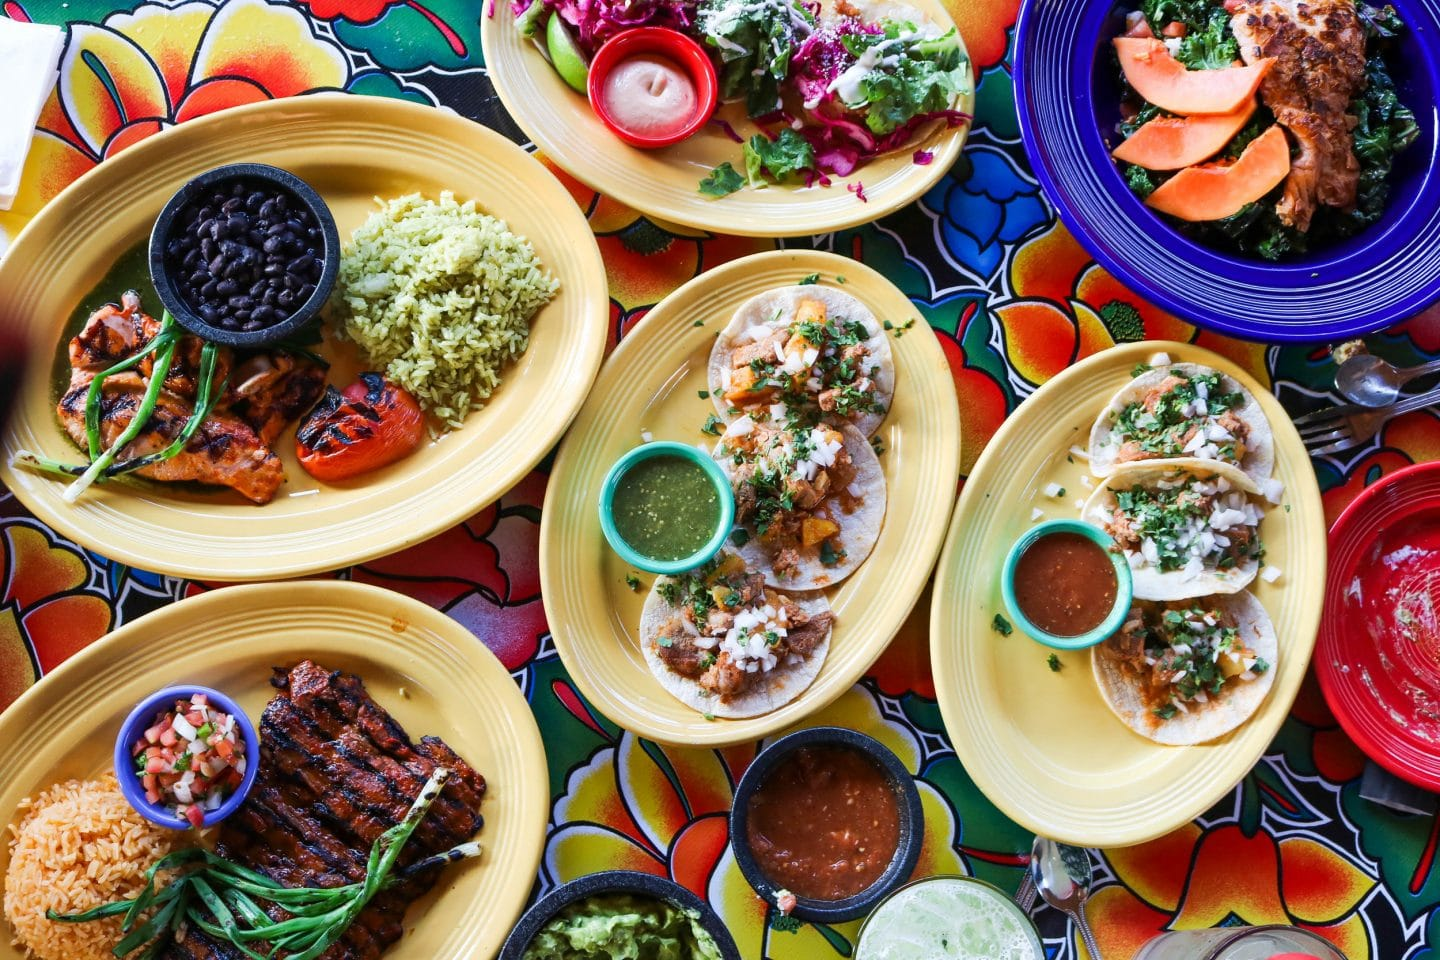 5 Of The Best Places To Celebrate Cinco De Mayo In LA This Weekend